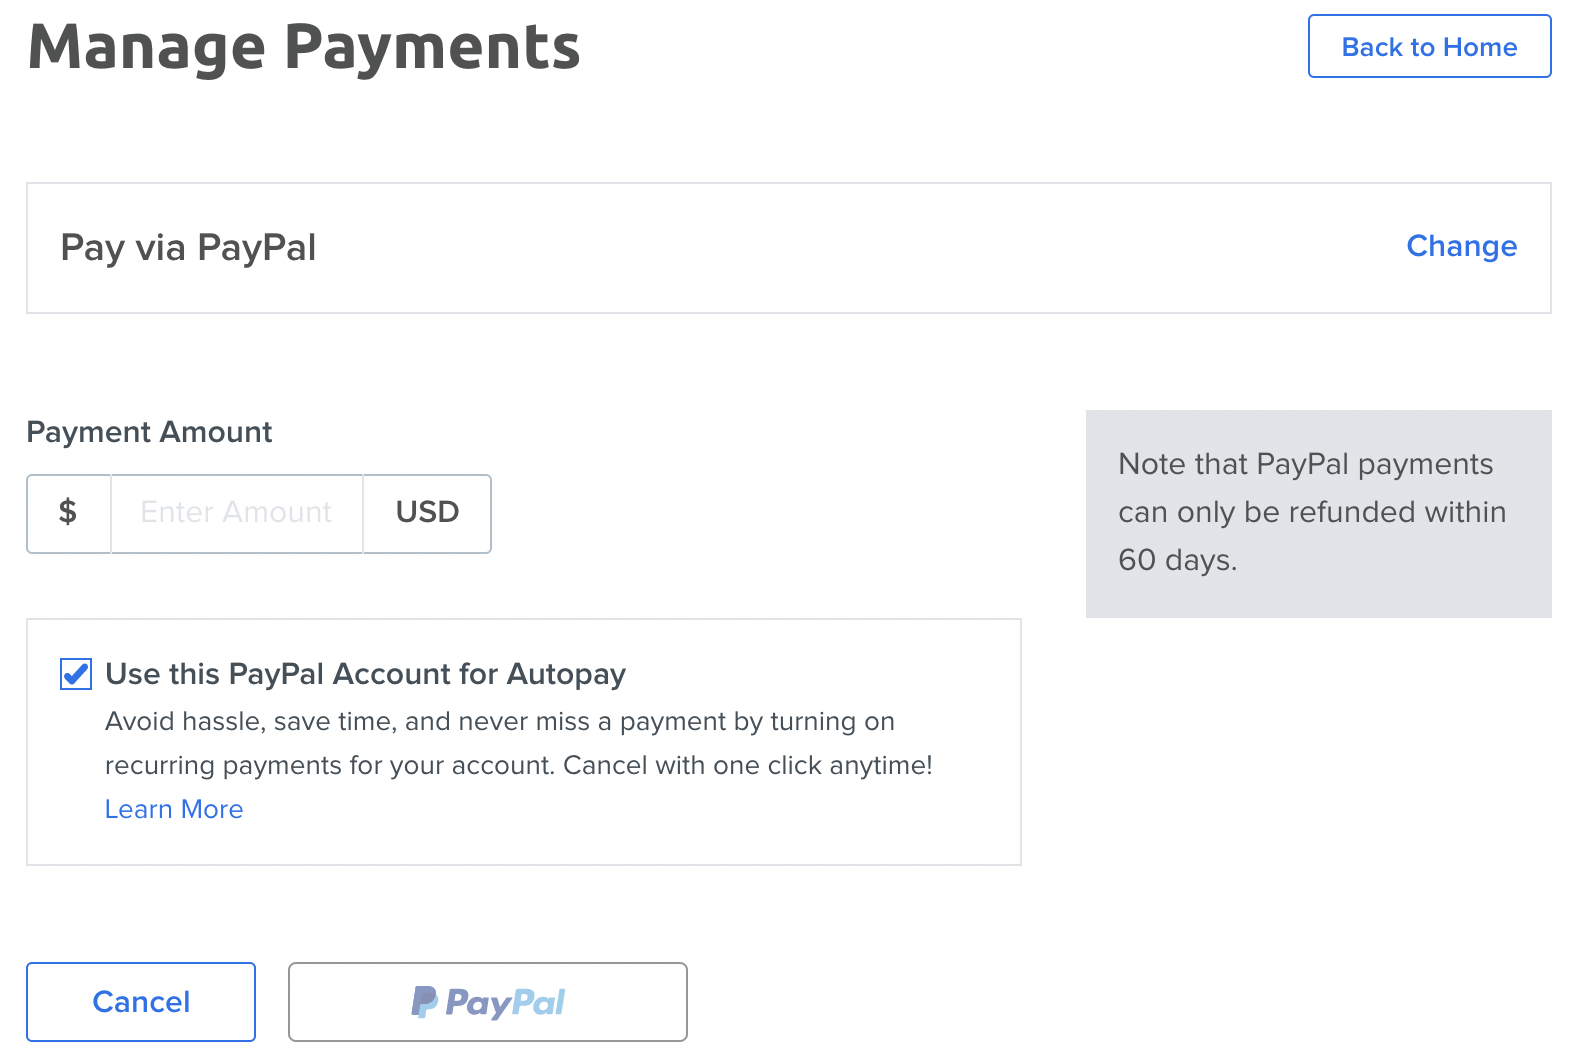 panel-manage-payments-options-09.png